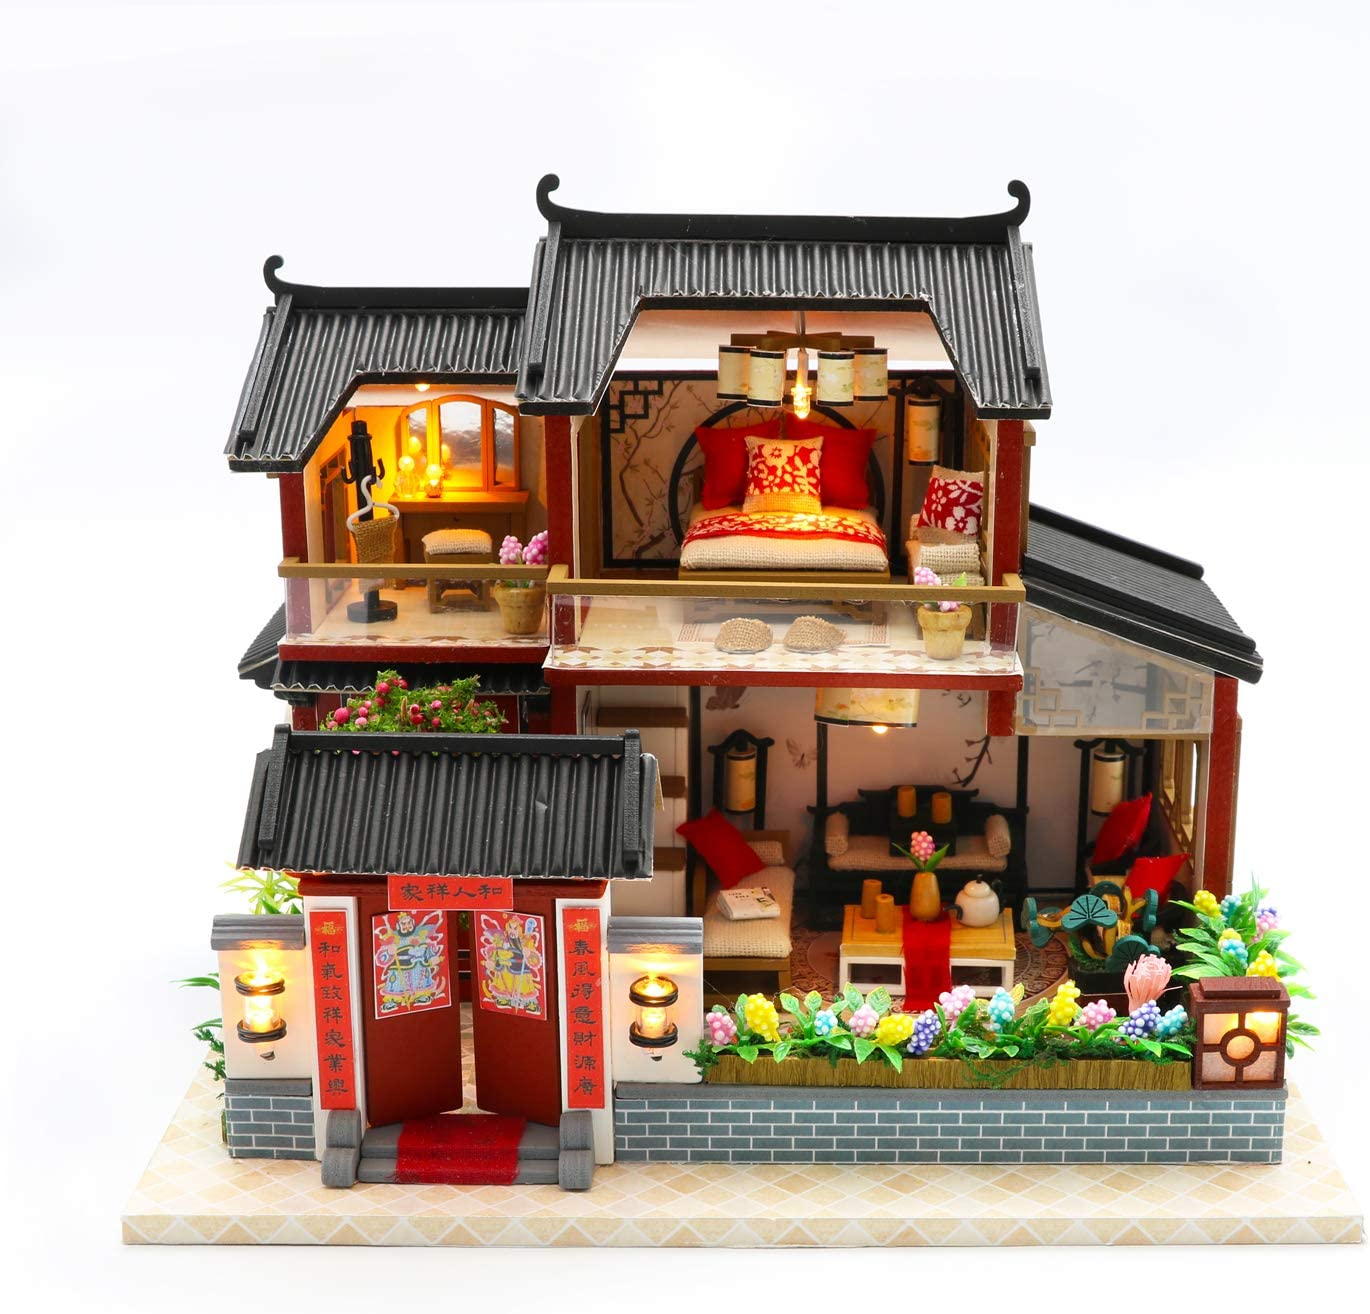 Cool Beans Boutique Miniature DIY Dollhouse Kit - Wooden Asian Dollhouse Traditional Home - with Dust Cover - Architecture Model kit (English Manual) (Asian Traditional Home)